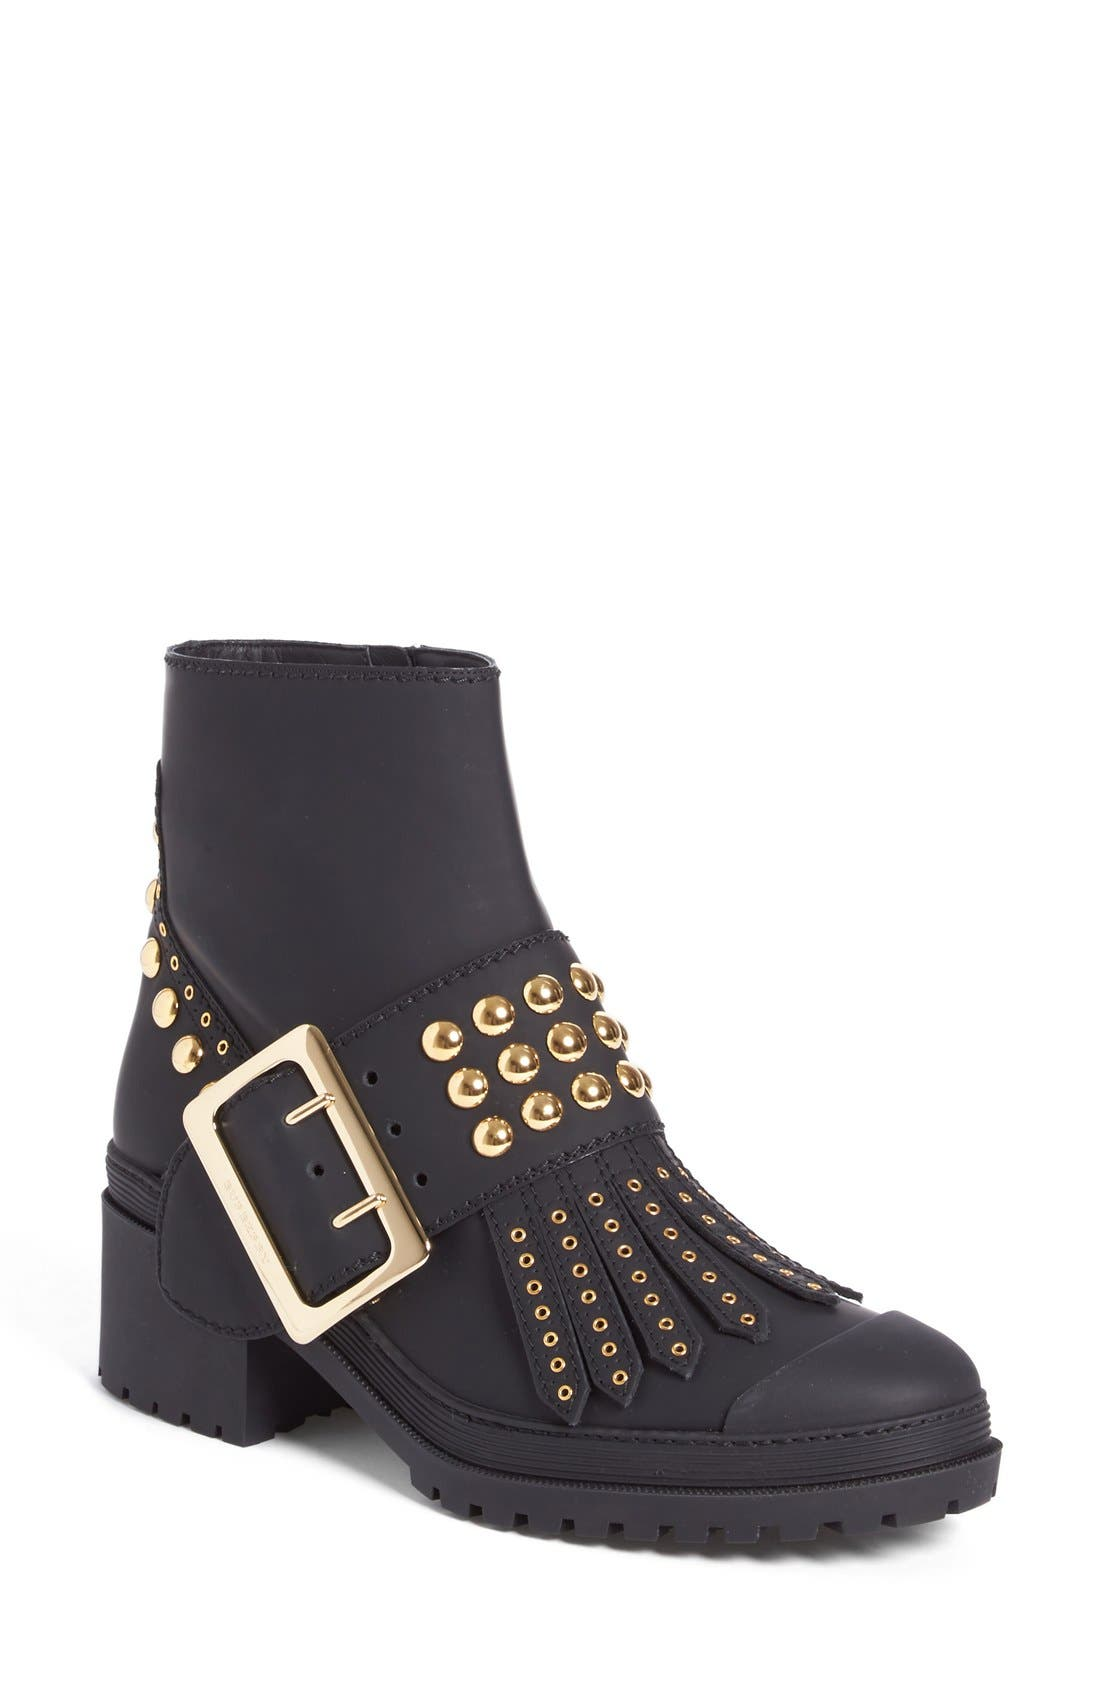 Main Image - Burberry 'Whitchester' Boot (Women)